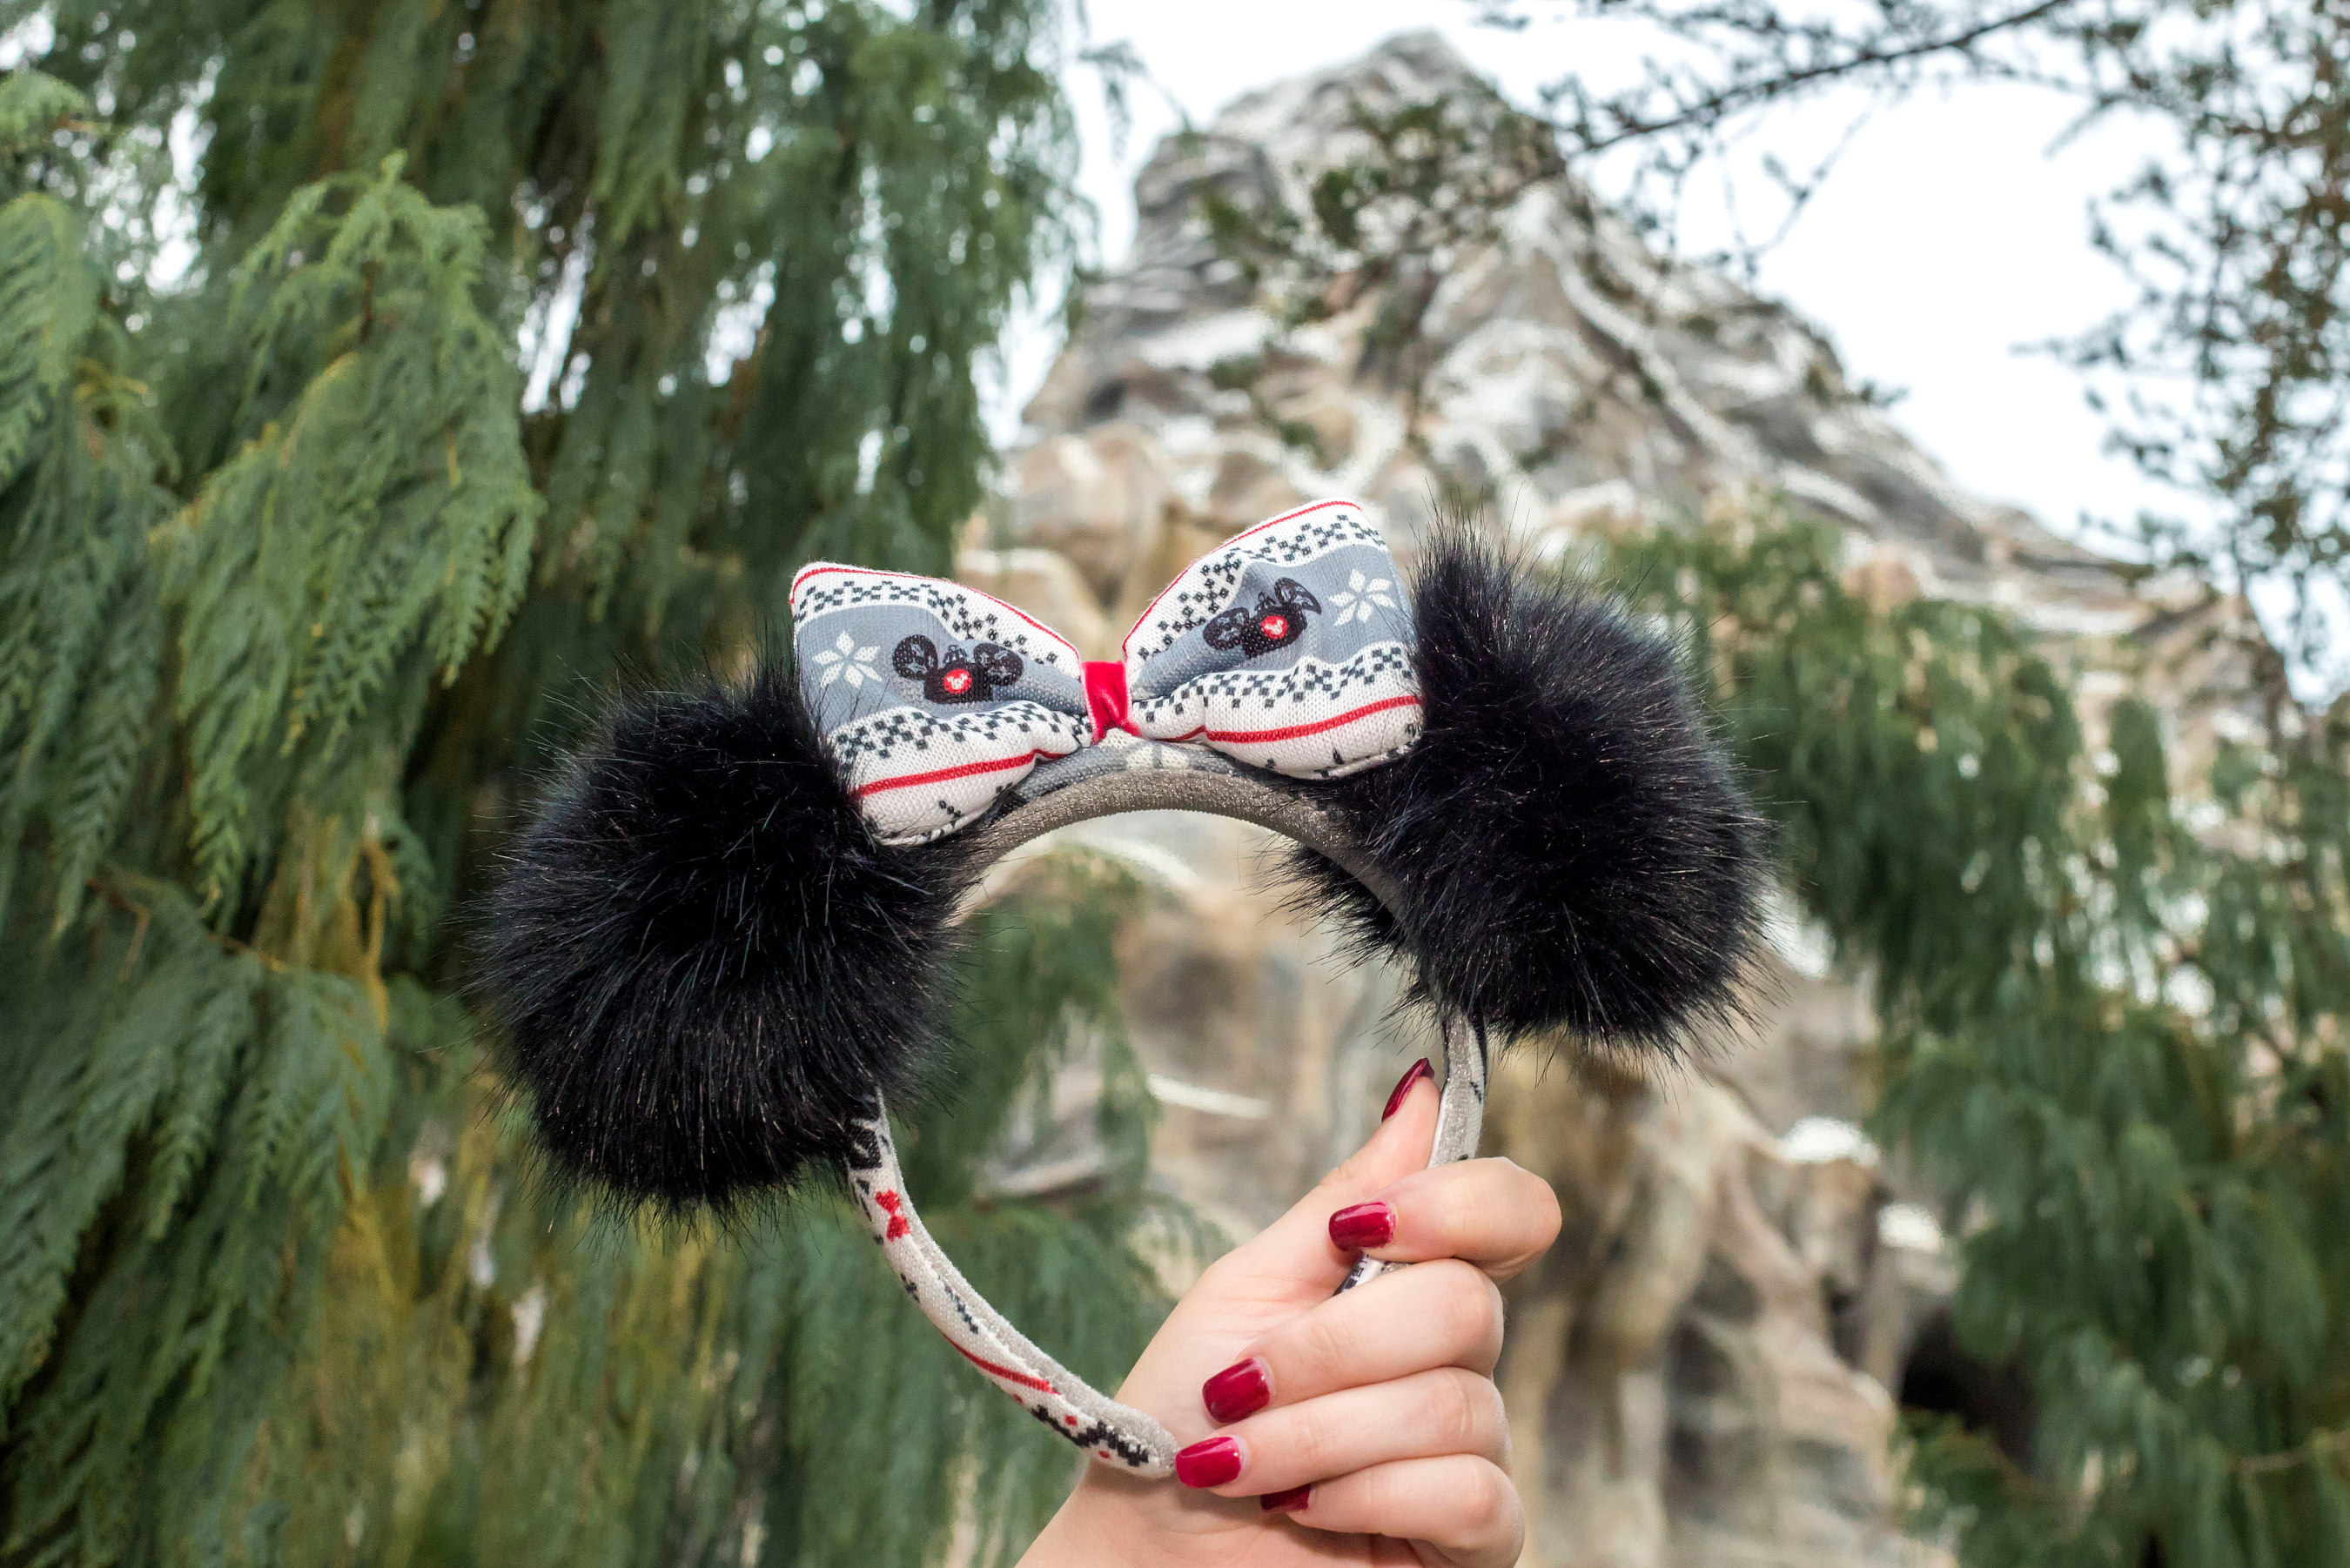 This pair of Minnie Mouse Sweater Pom Pom Ears featuring a knit bow is one of the three seasonal Minnie Ears designs found throughout Disneyland Resort in California and Walt Disney World Resort in Florida during the holiday season. (Joshua Sudock/Disneyland Resort)